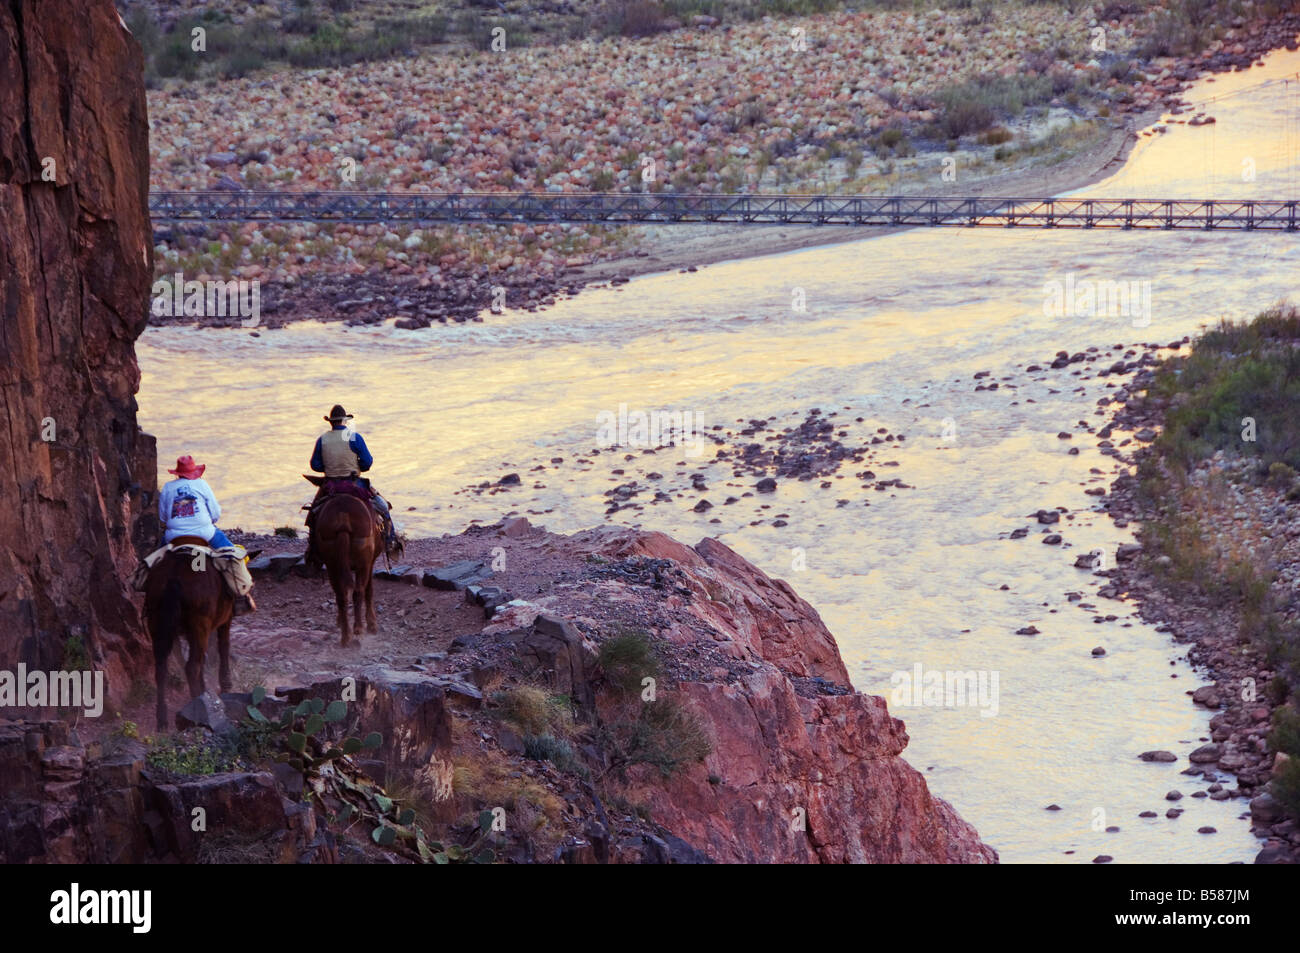 Mules taking tourists along the Colorado River Trail, Grand Canyon, Arizona, United States of America, North America - Stock Image